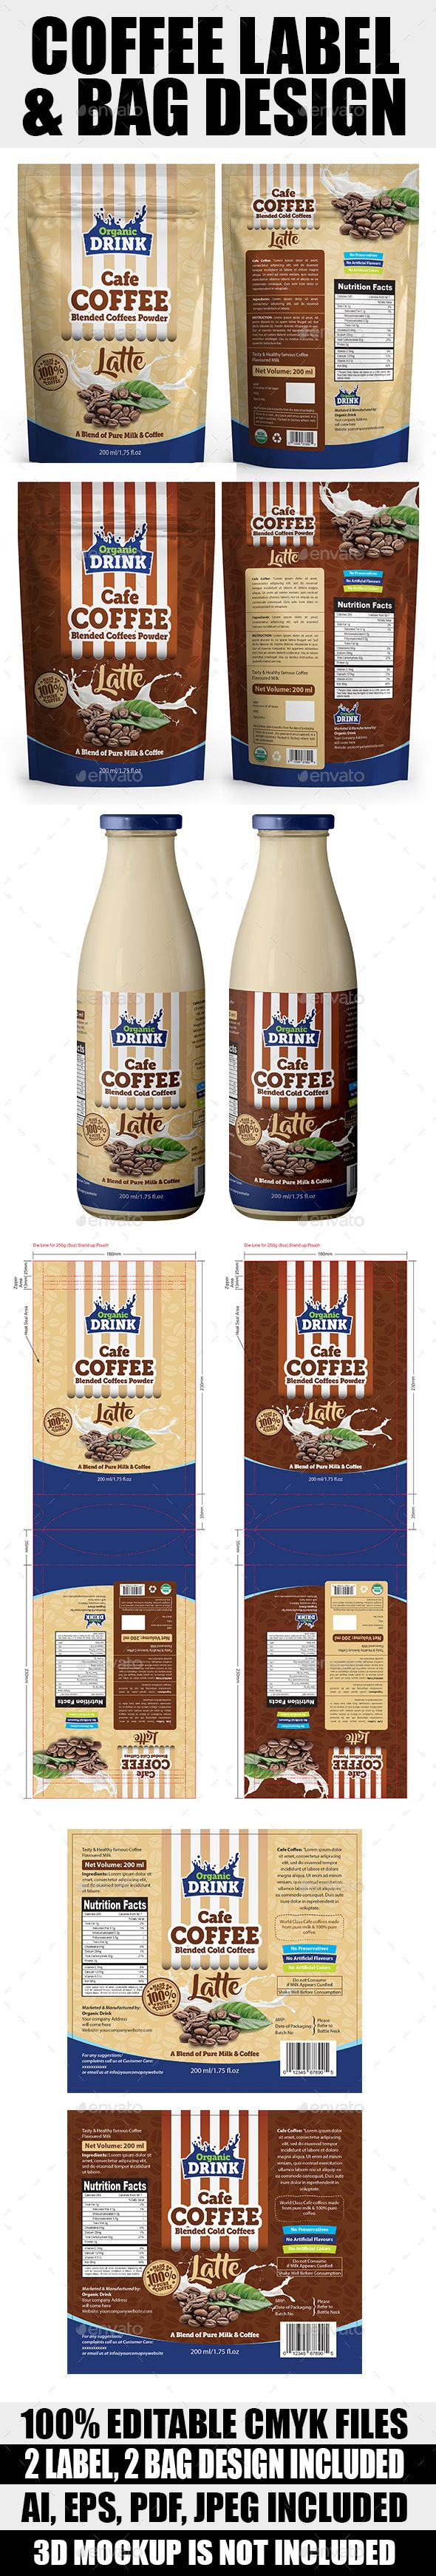 Coffee Label & Bag Templates - #Packaging Print #Templates Download here: https://graphicriver.net/item/coffee-label-bag-templates/19193472?ref=alena994